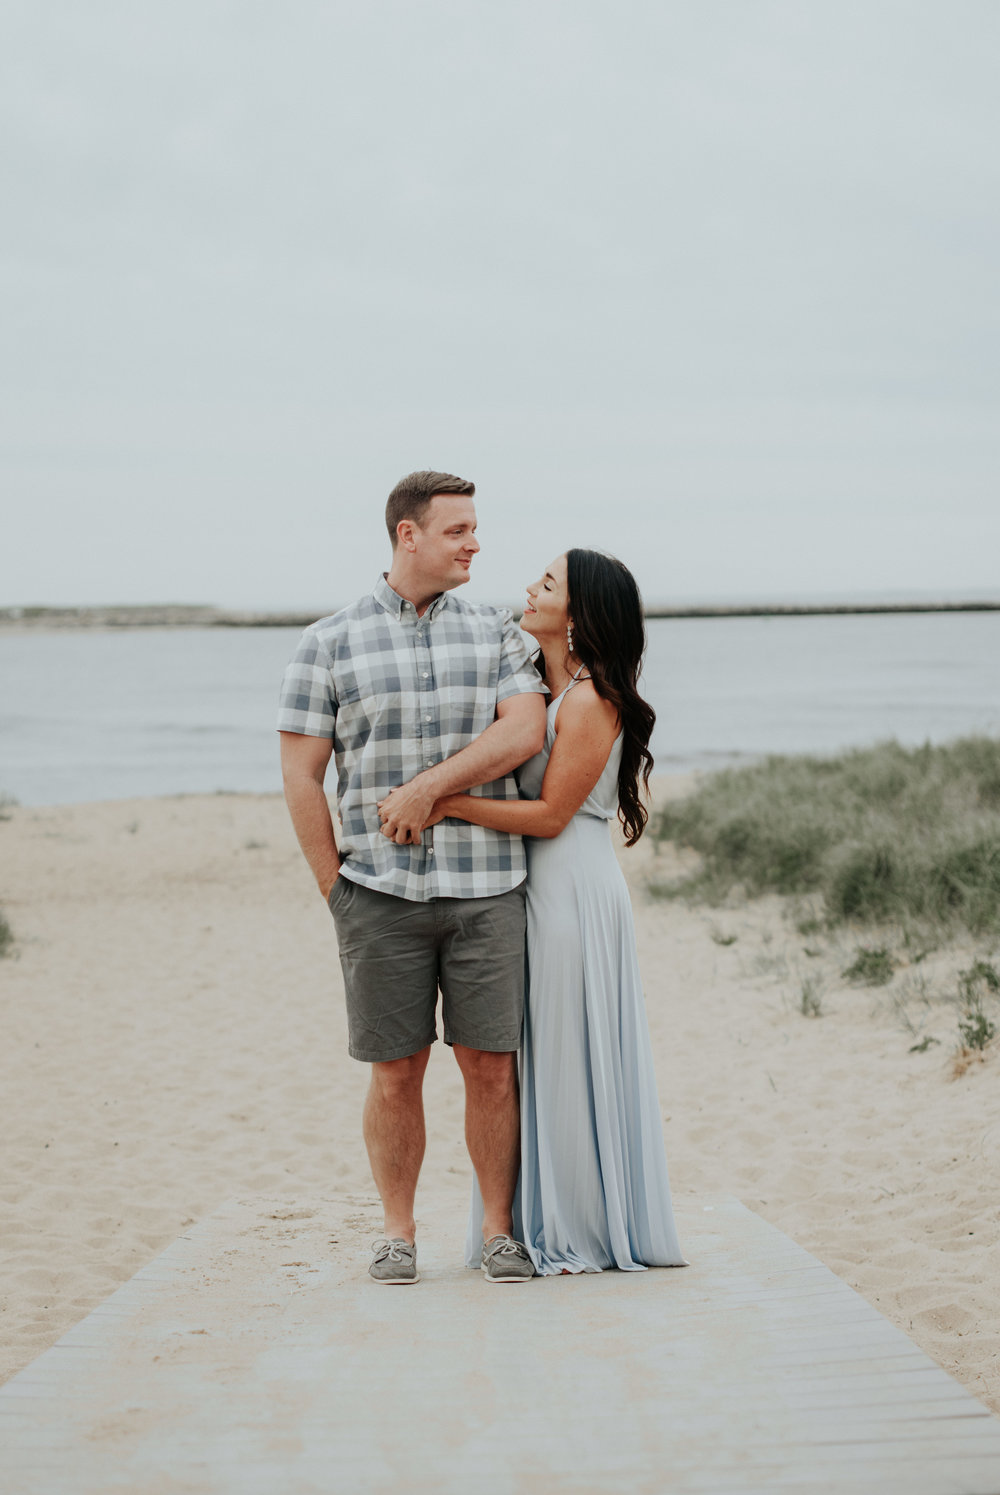 Megan & John-Massachusetts-Plum Island Newburyport Engagement-Beach Couples Session-Photographer-00085.jpg